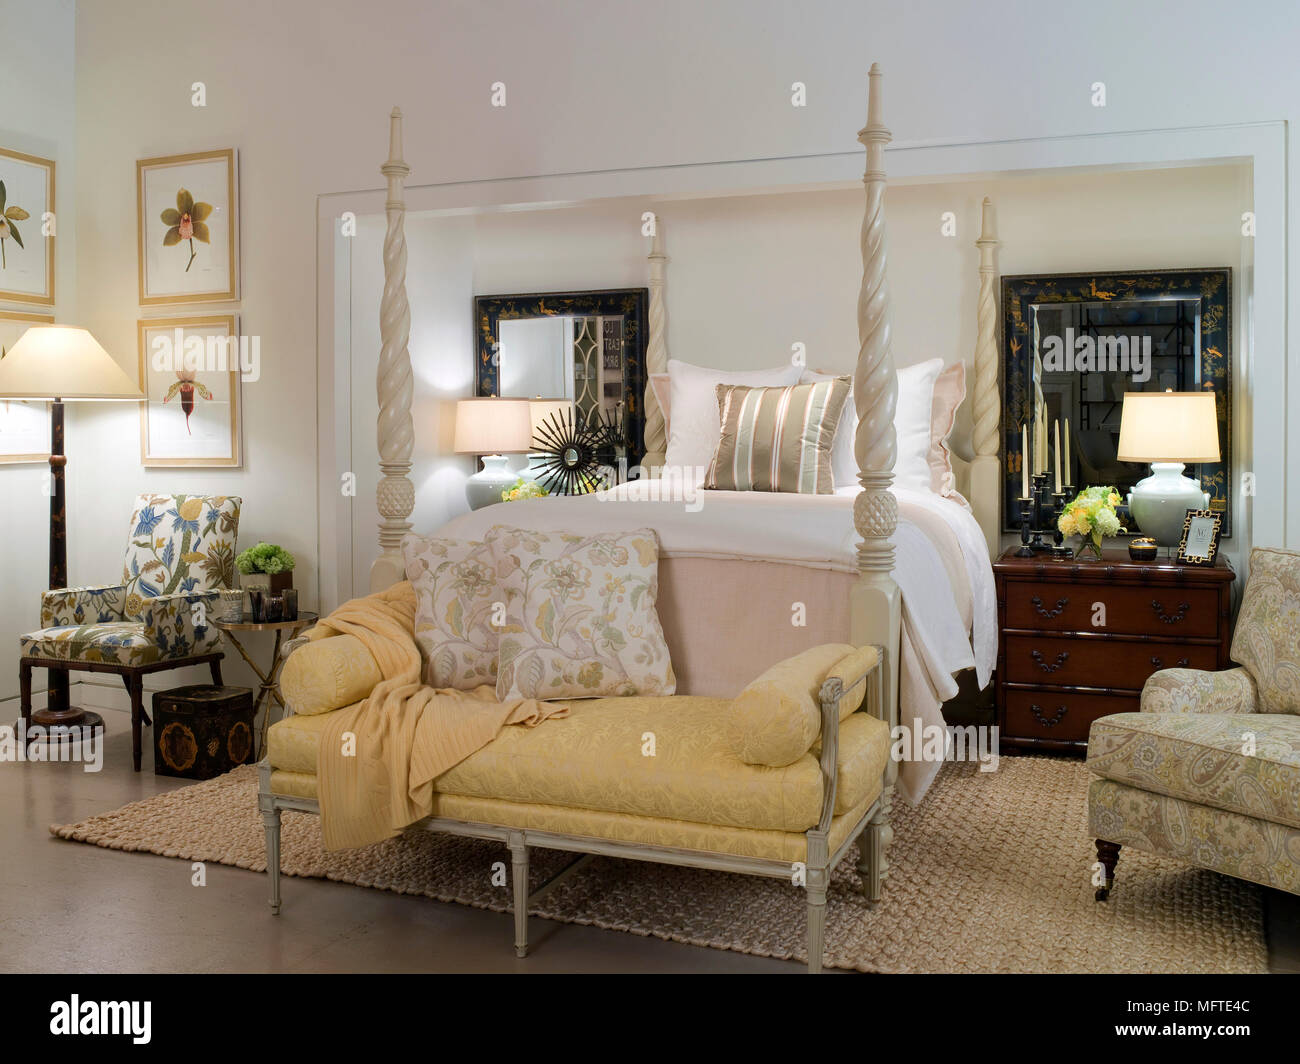 Settee At End Of Four Poster Bed In Traditional Style Bedroom Stock Photo Alamy